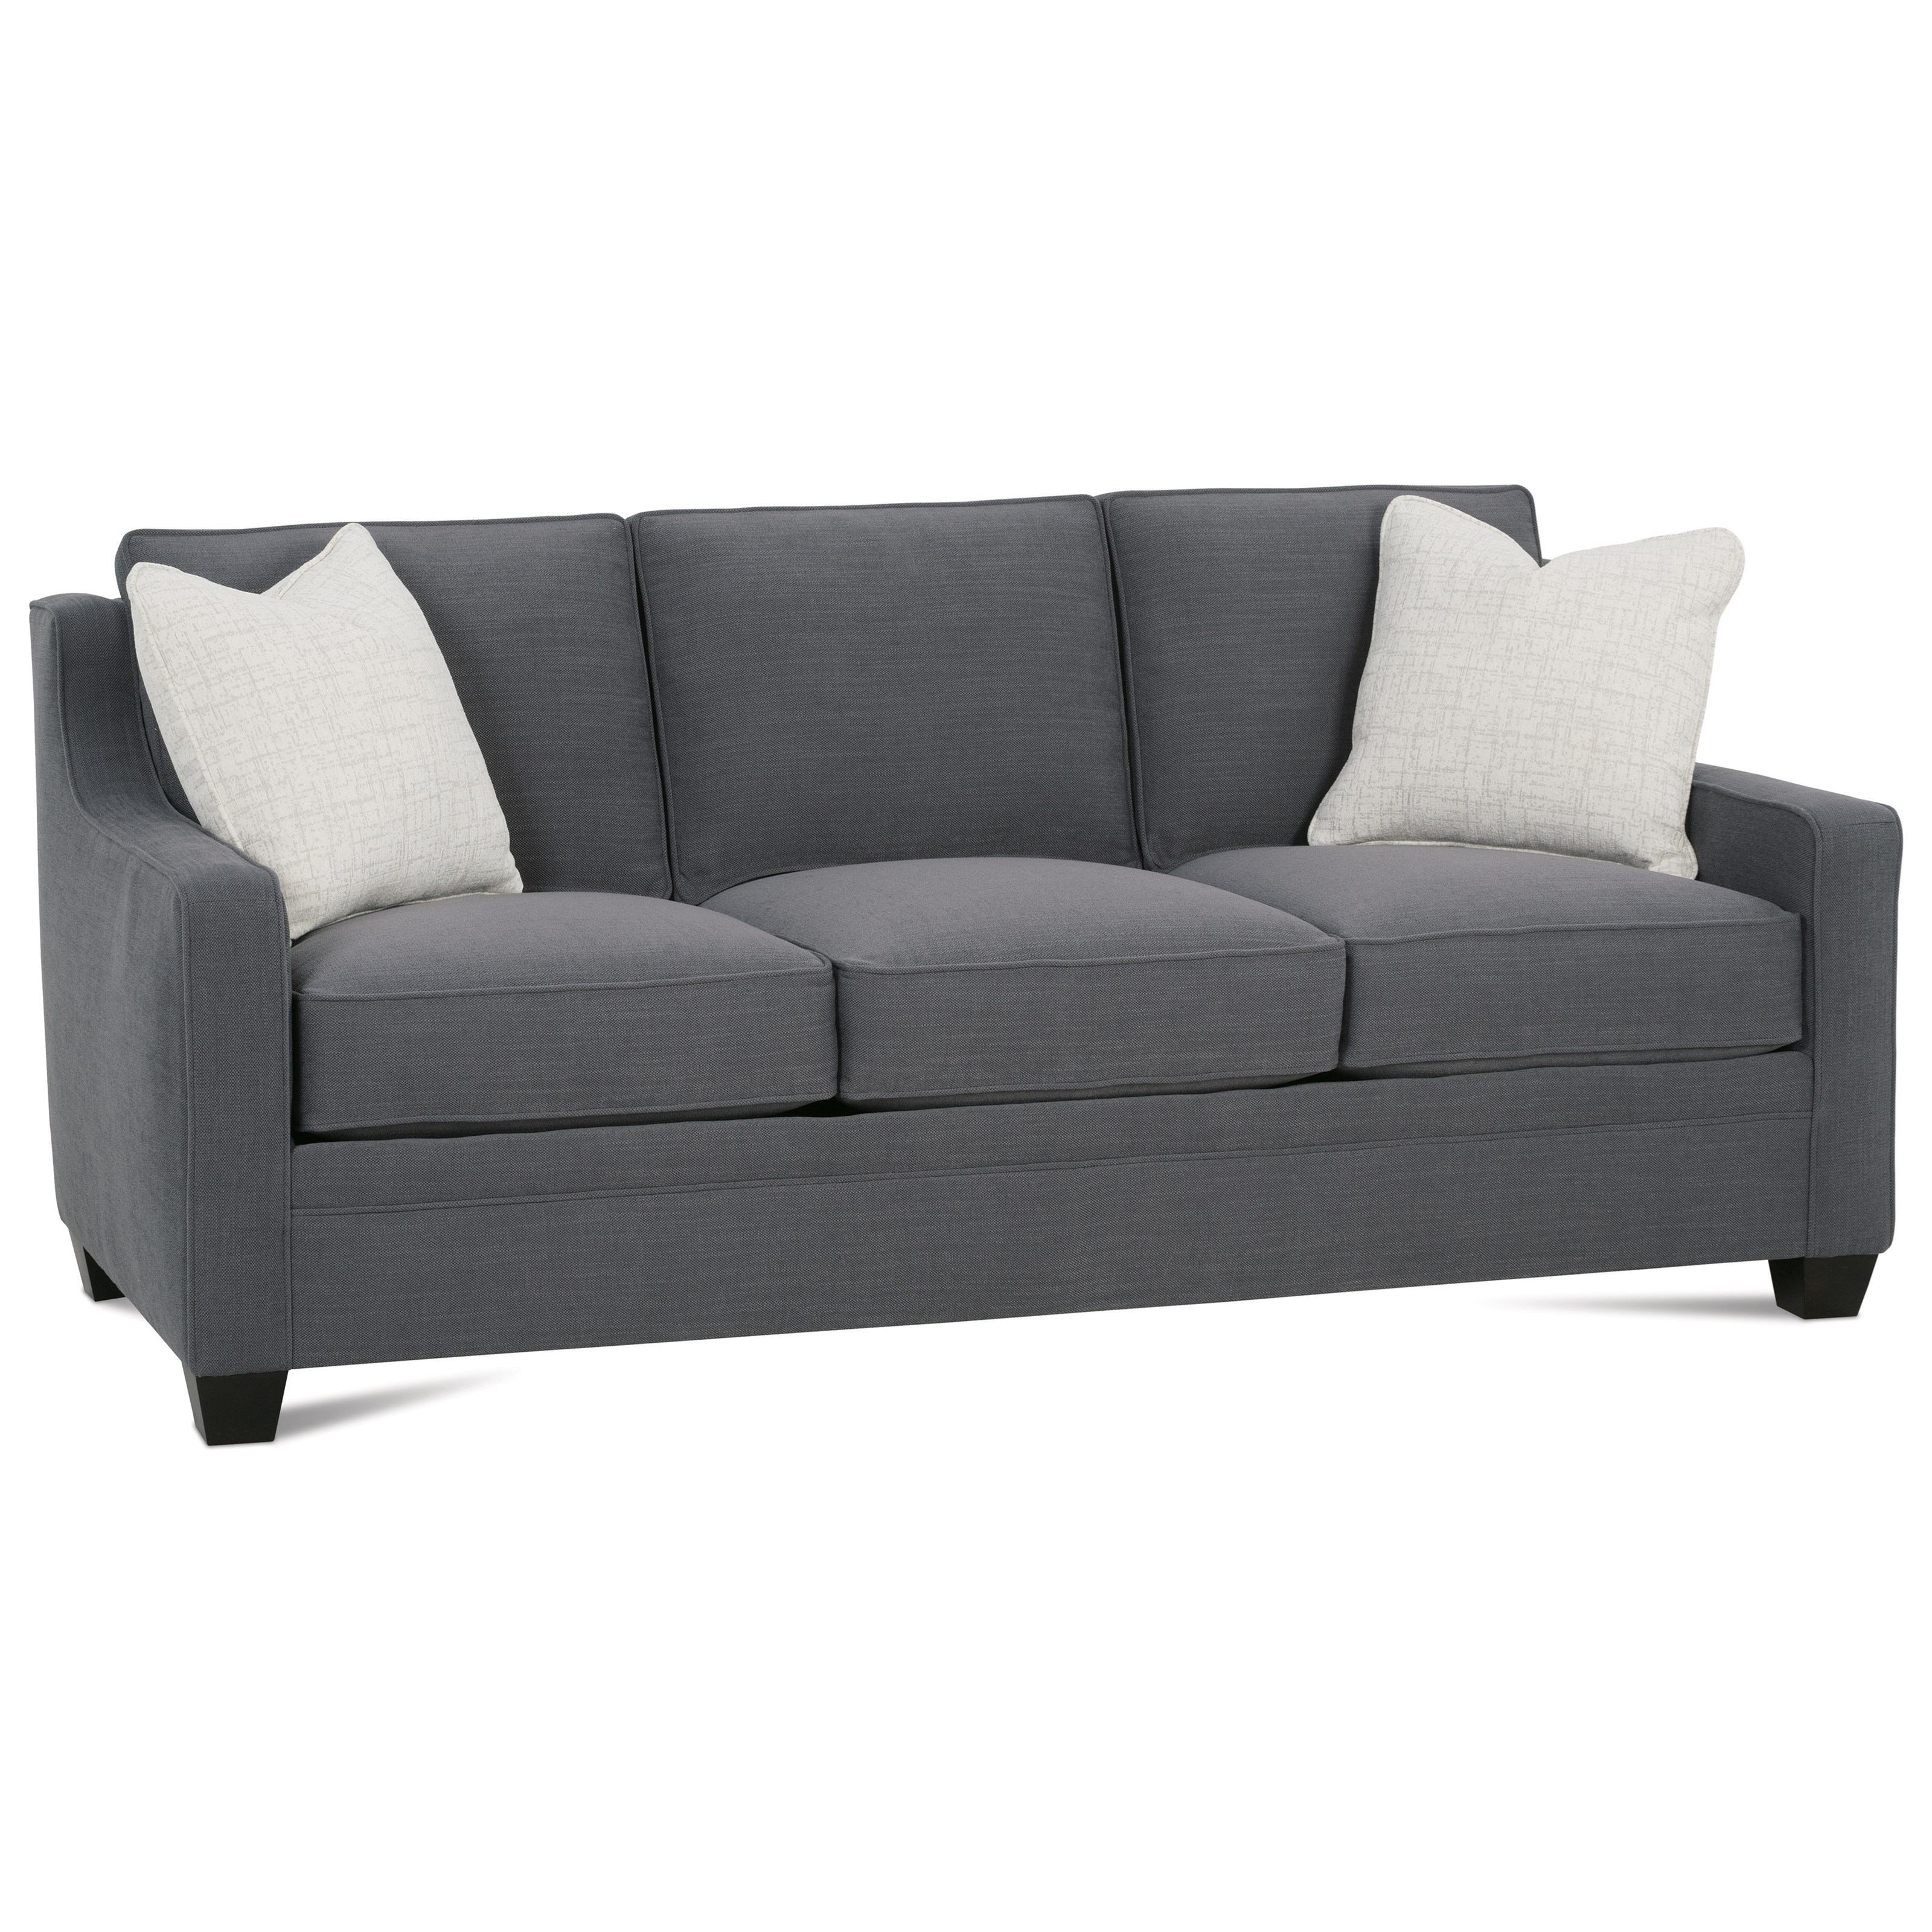 Rowe Fuller Full Bed Sleeper Sofa Belfort Furniture  : products2Frowe2Fcolor2Ffuller20p180p180 028 14544 04 b8jpgscalebothampwidth500ampheight500ampfsharpen25ampdown from www.belfortfurniture.com size 500 x 500 jpeg 22kB